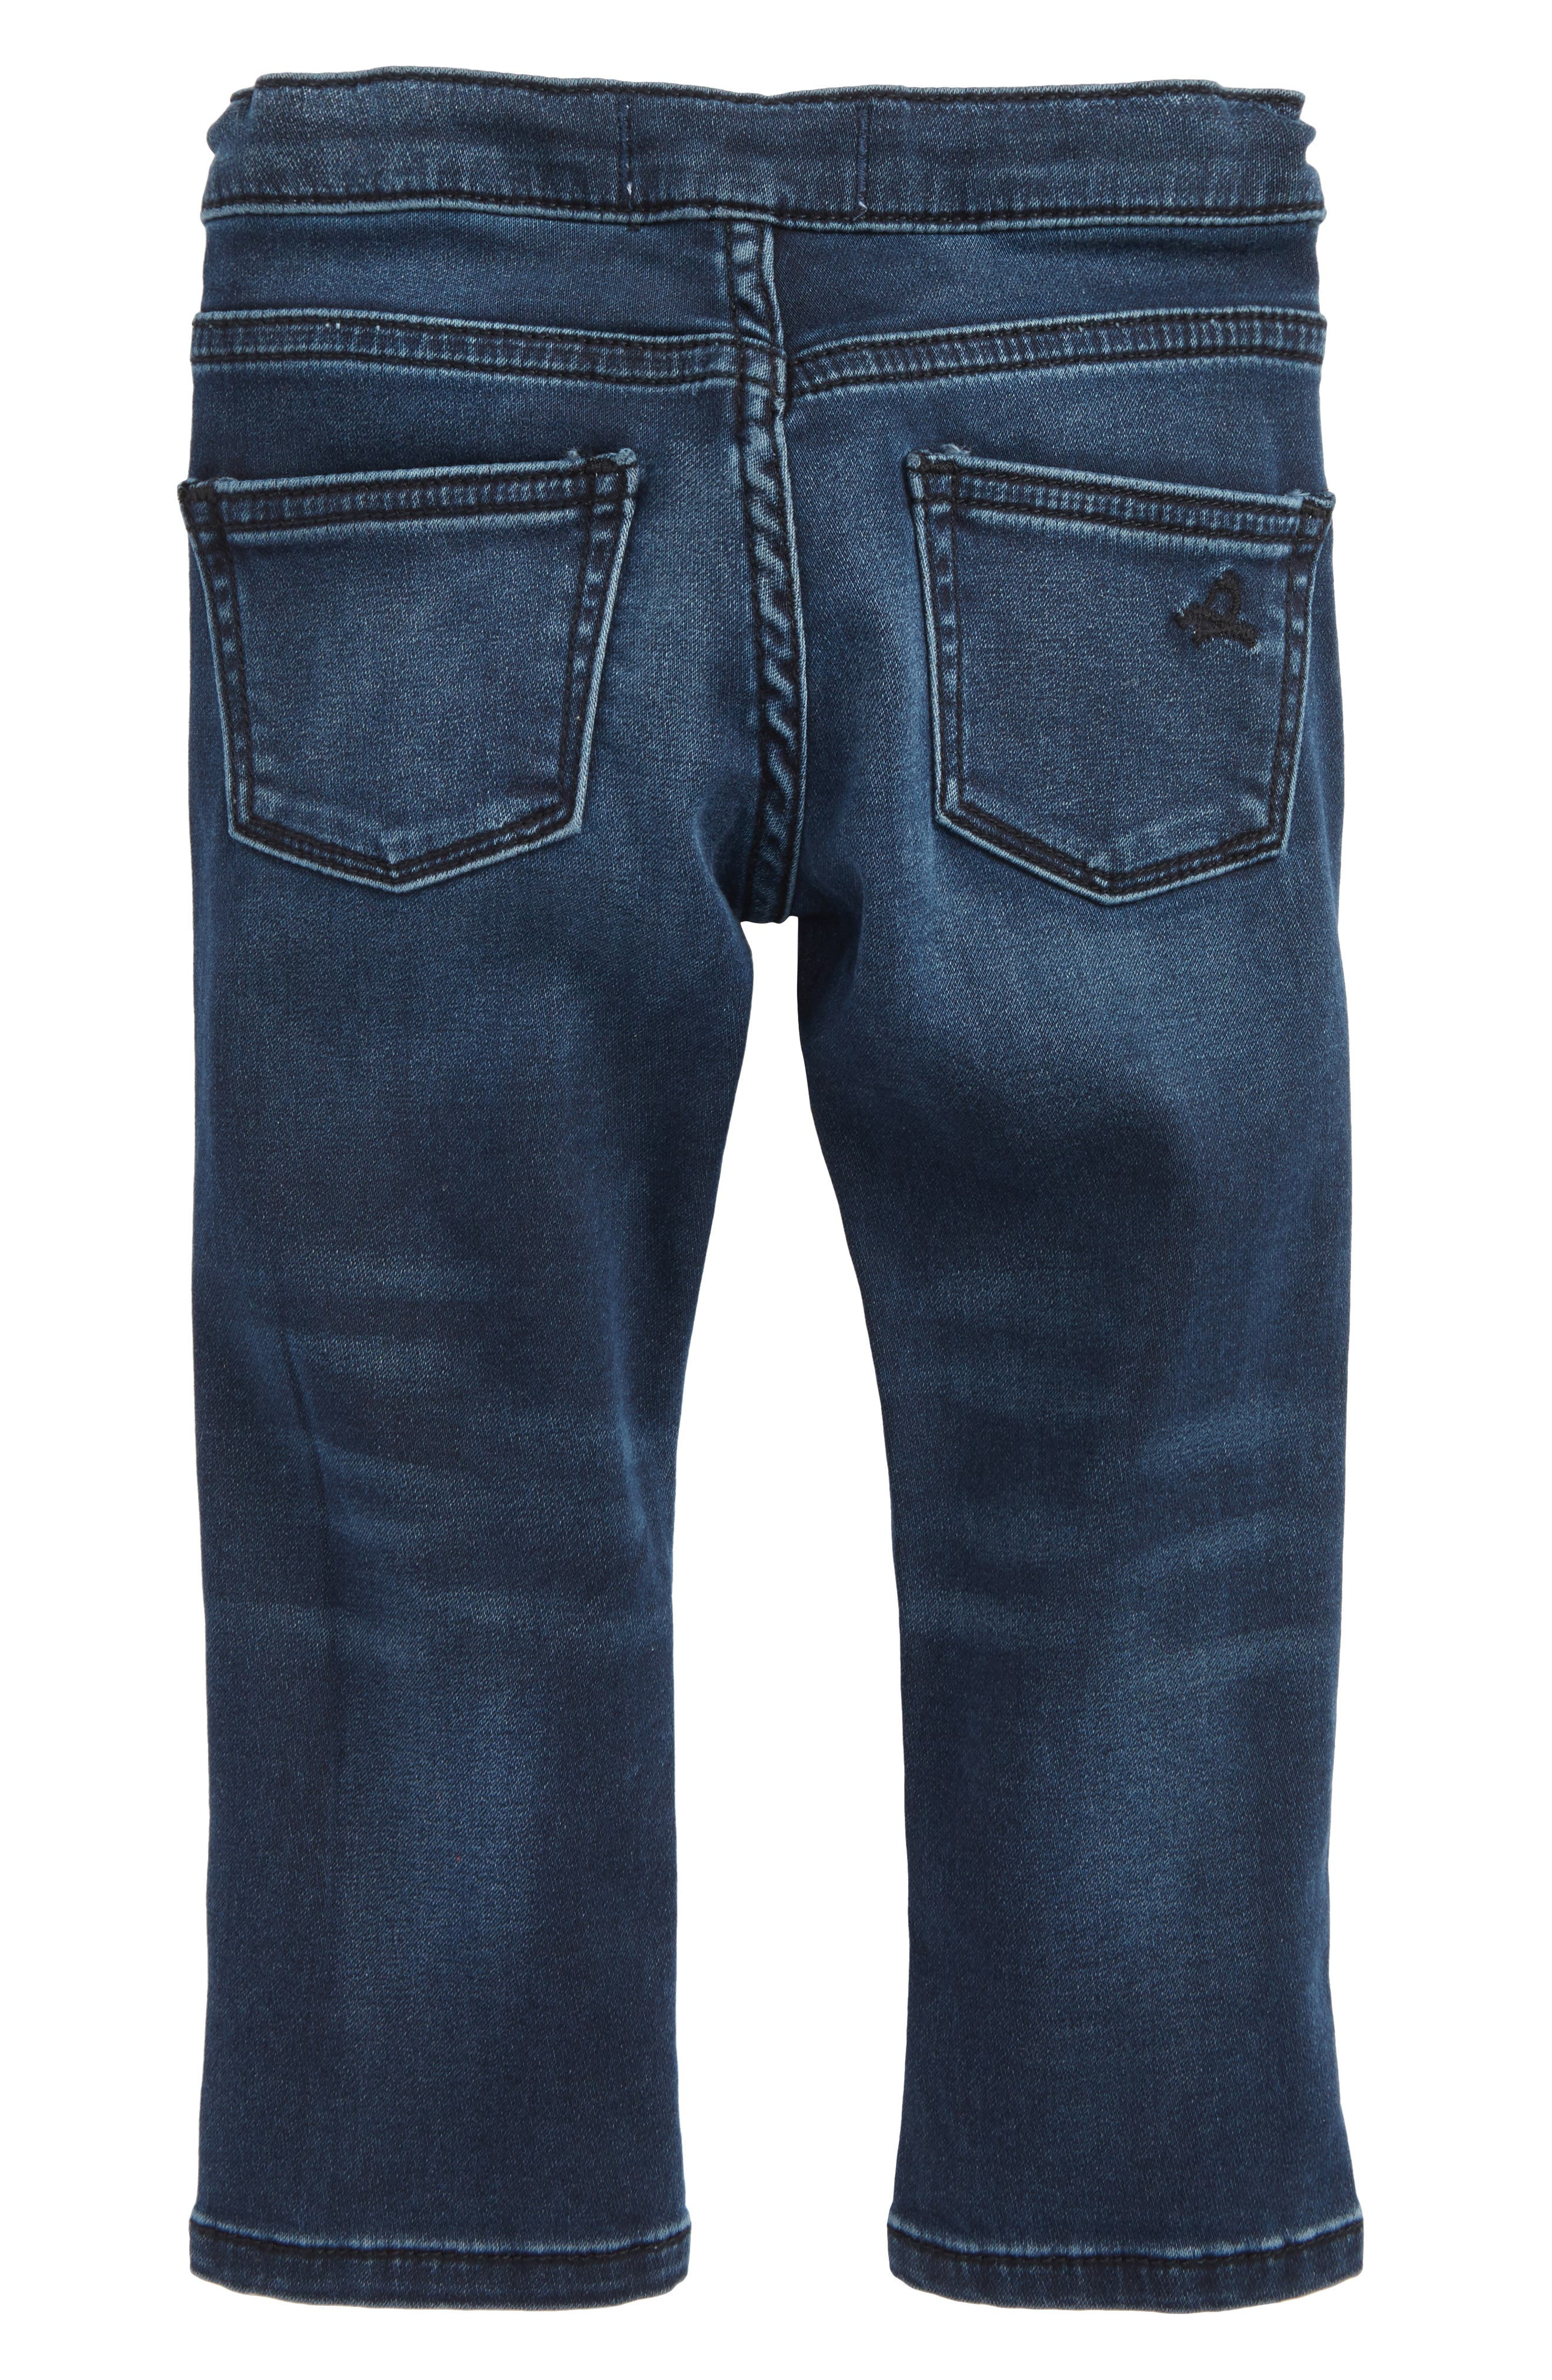 DL1961,                             Eddy Slim Fit Jeans,                             Alternate thumbnail 2, color,                             405